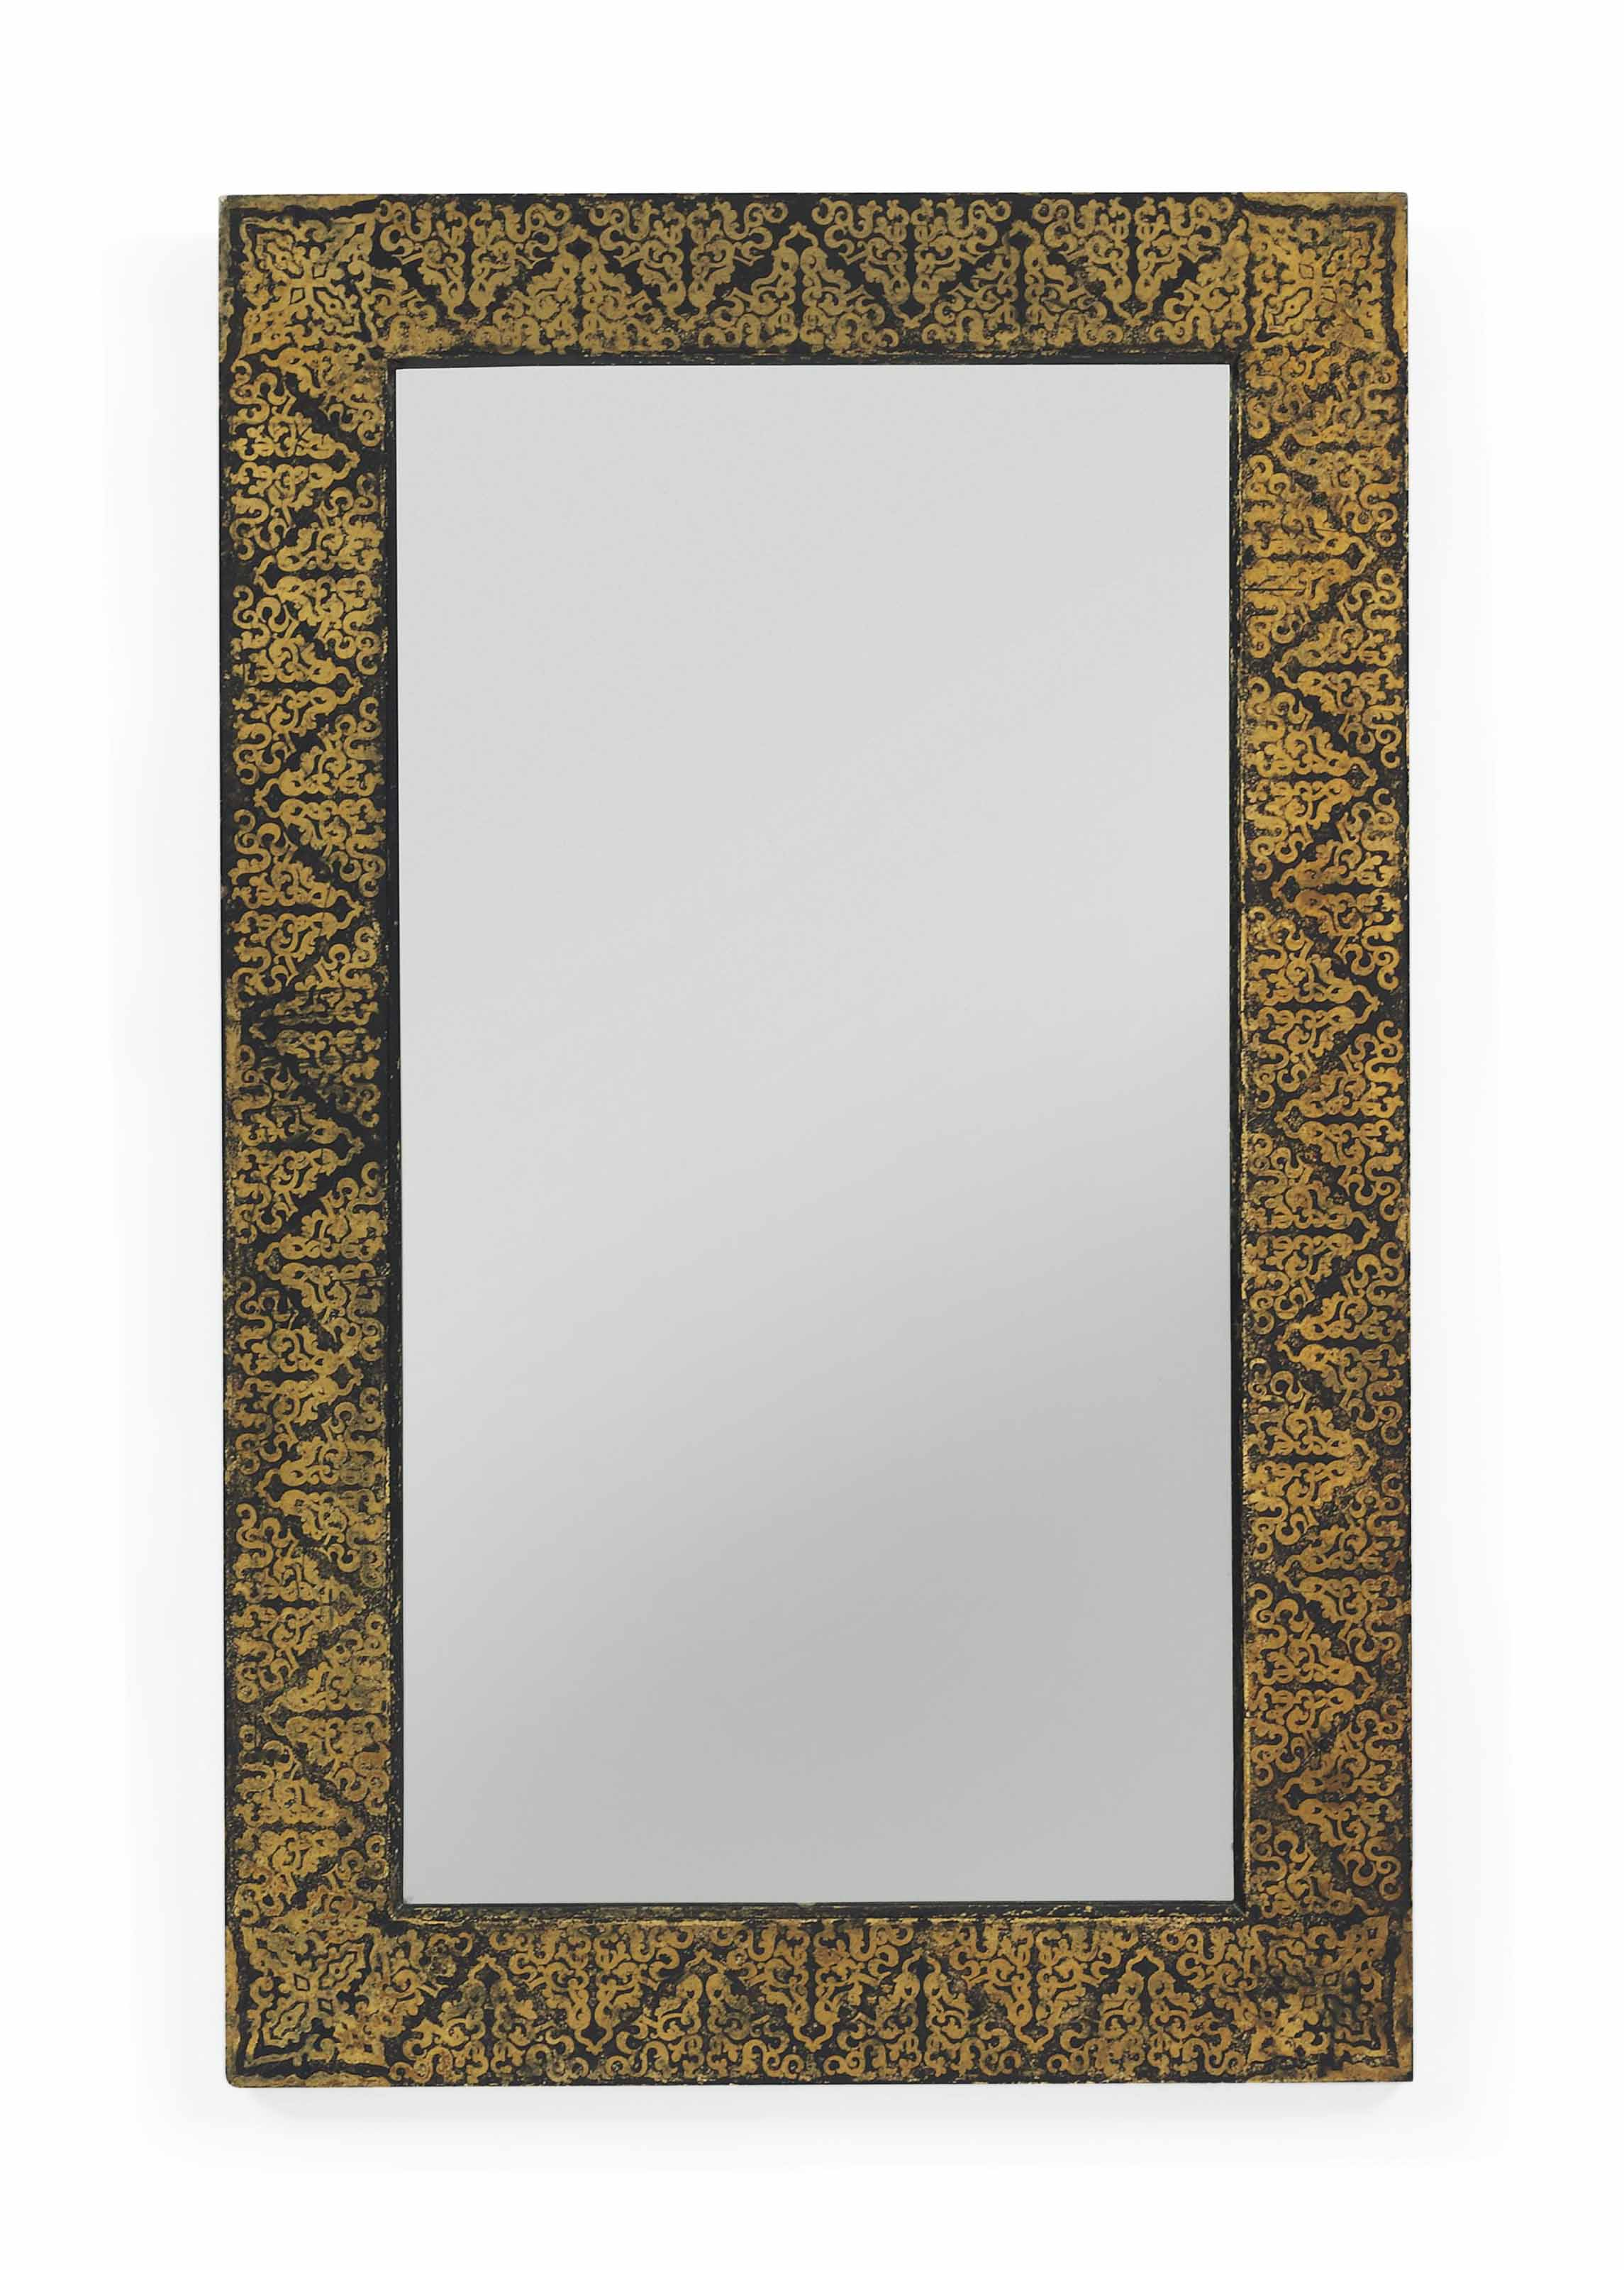 A VICTORIAN PARCEL-GILT AND EBONISED PAPIER-MACHE MIRROR